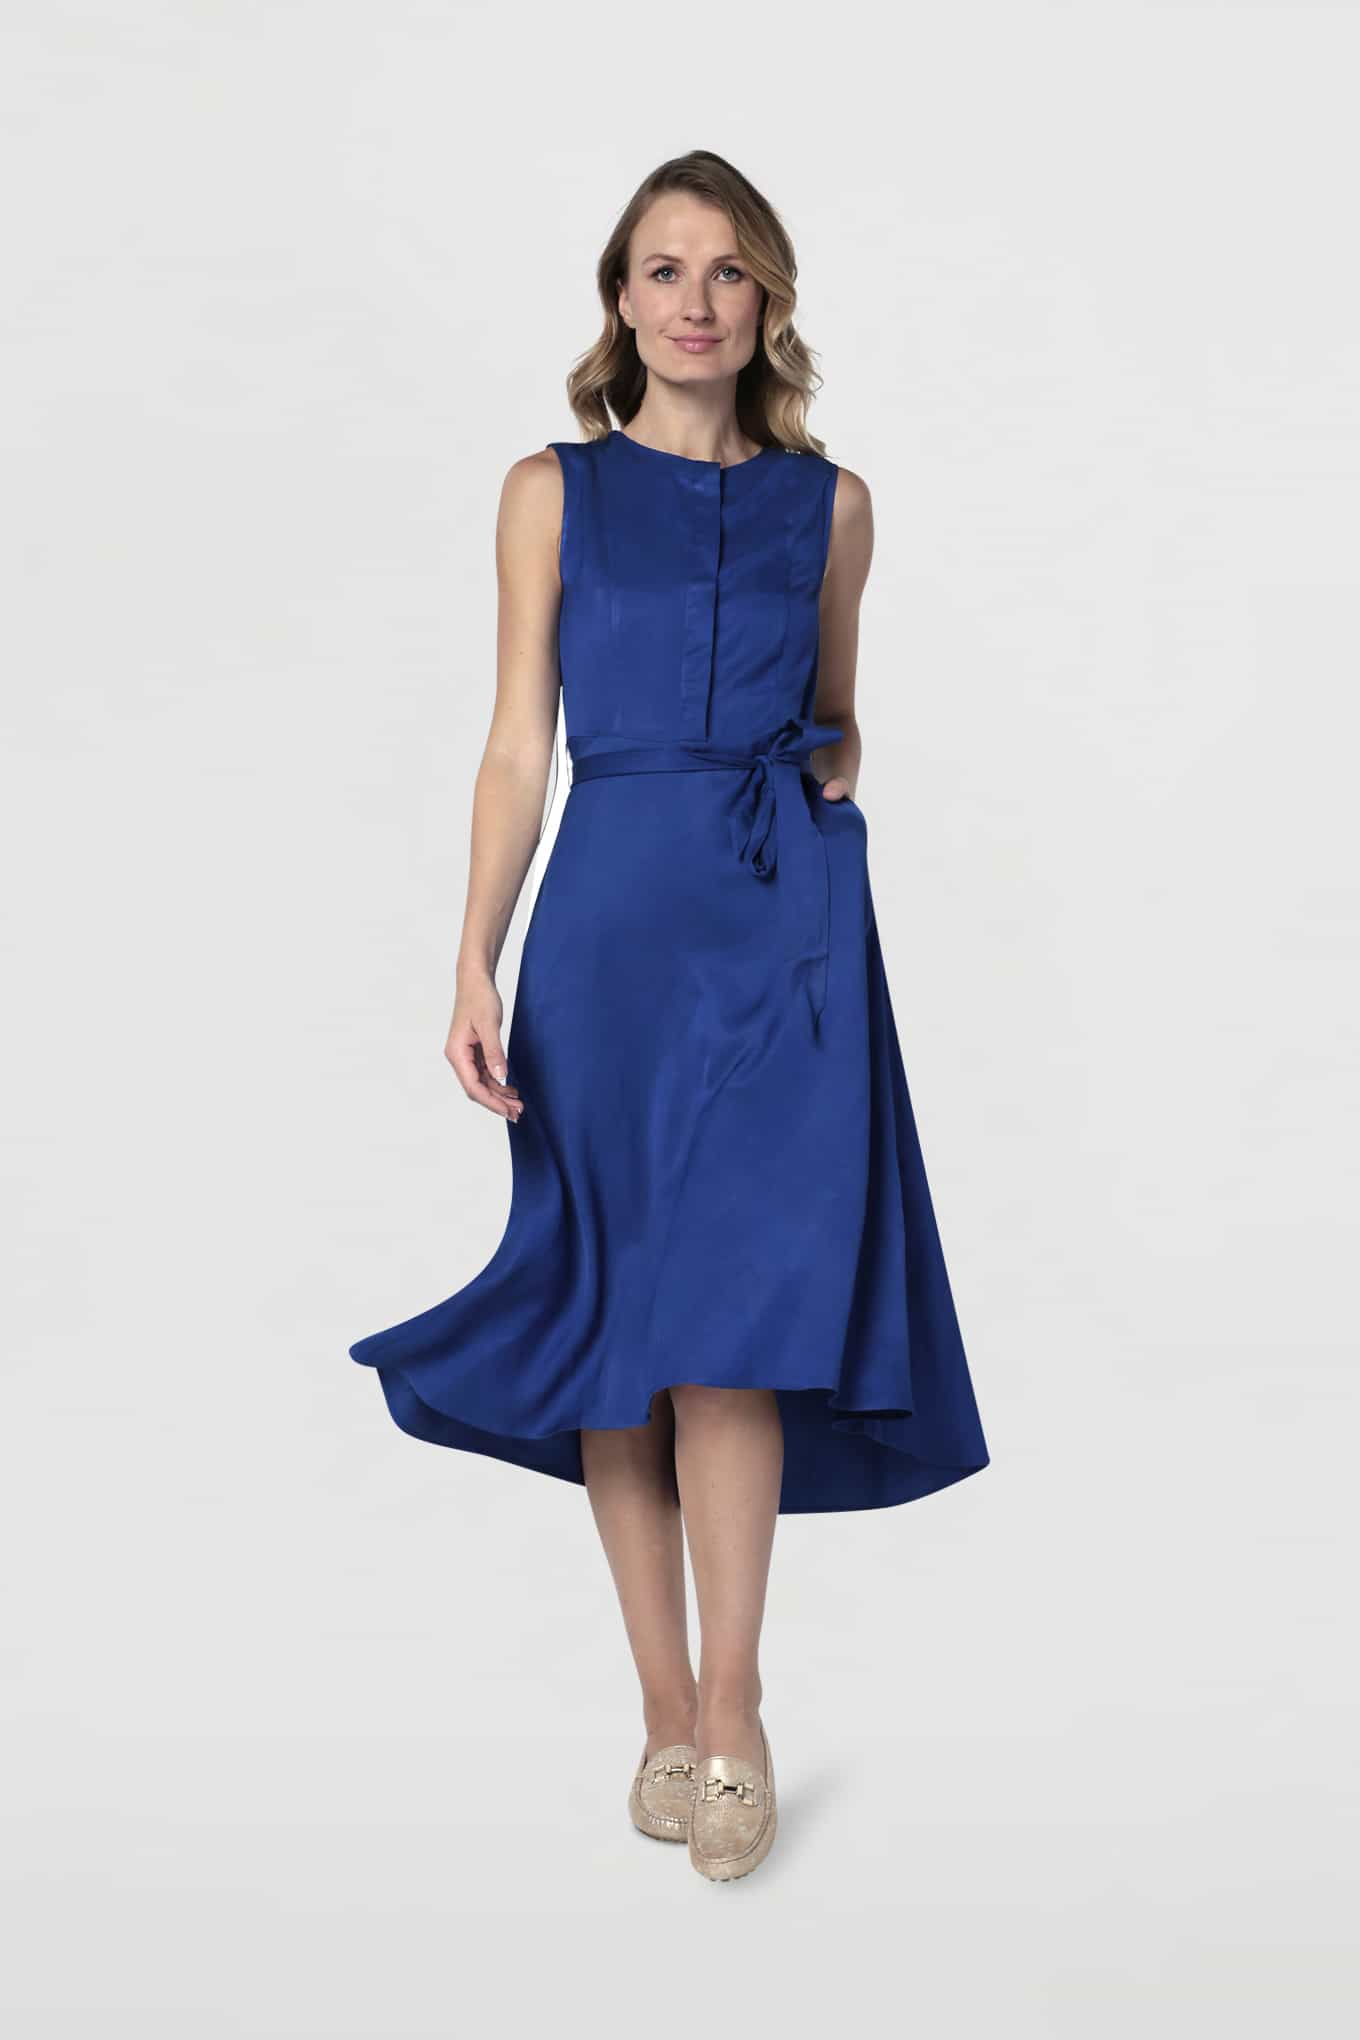 Dress Royal Blue Fantasy Woman